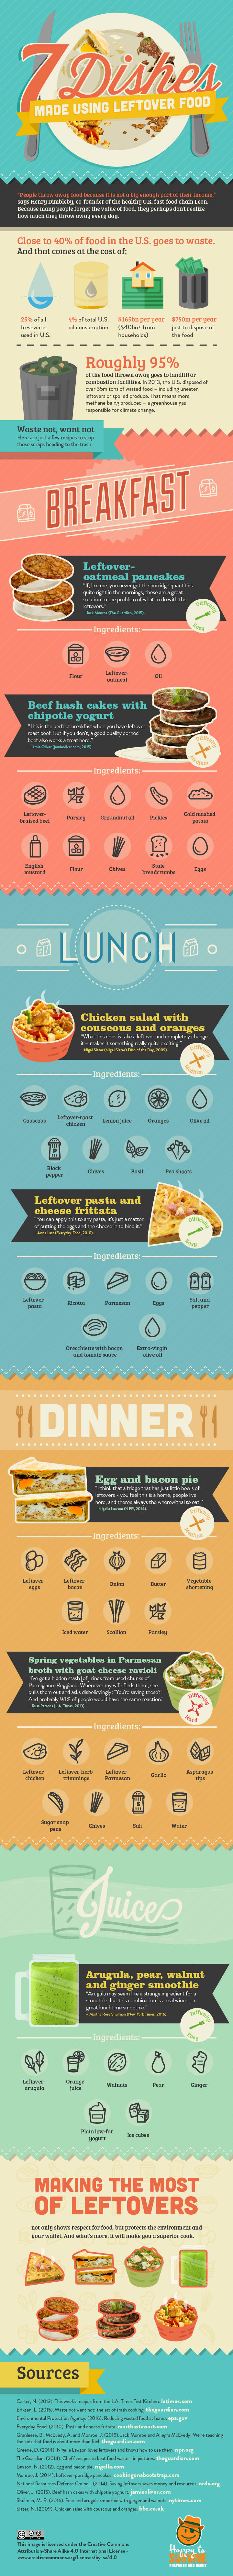 infographic, food infographic, recipe infographic, food waste, food waste recipes, simple recipes, green recipes, food waste solutions, reader submission